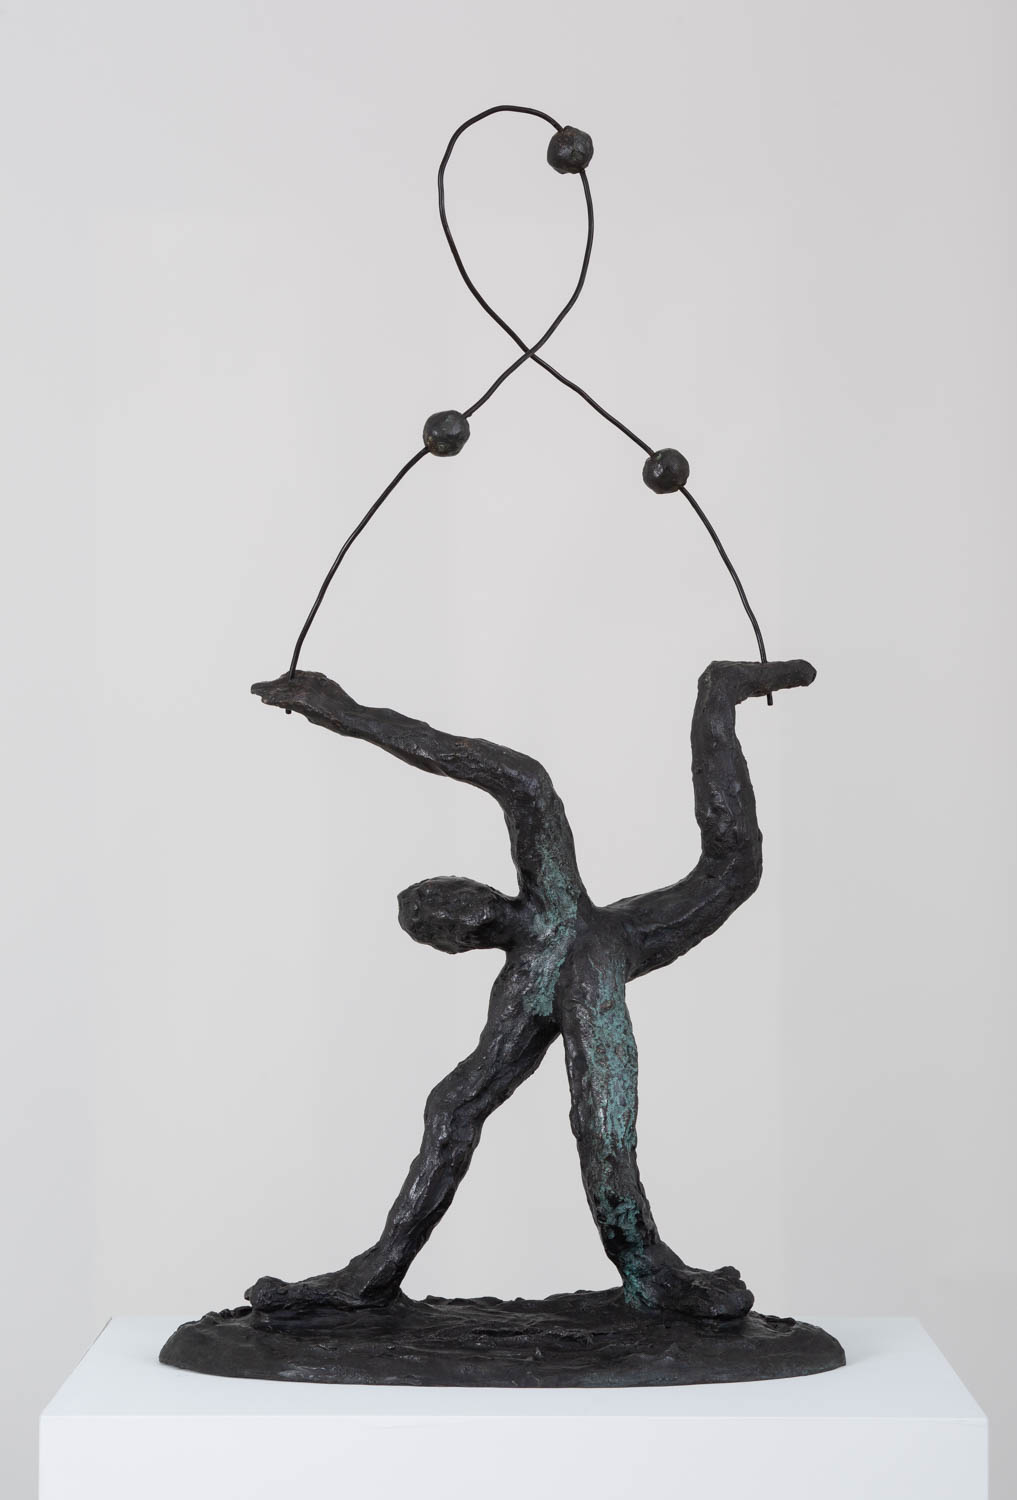 <em>man standing juggling three balls</em>, 2017<br />Bronze and steel<br />31 1/2 x 17 x 10 1/2 inches (80 x 43.2 x 26.7 cm)